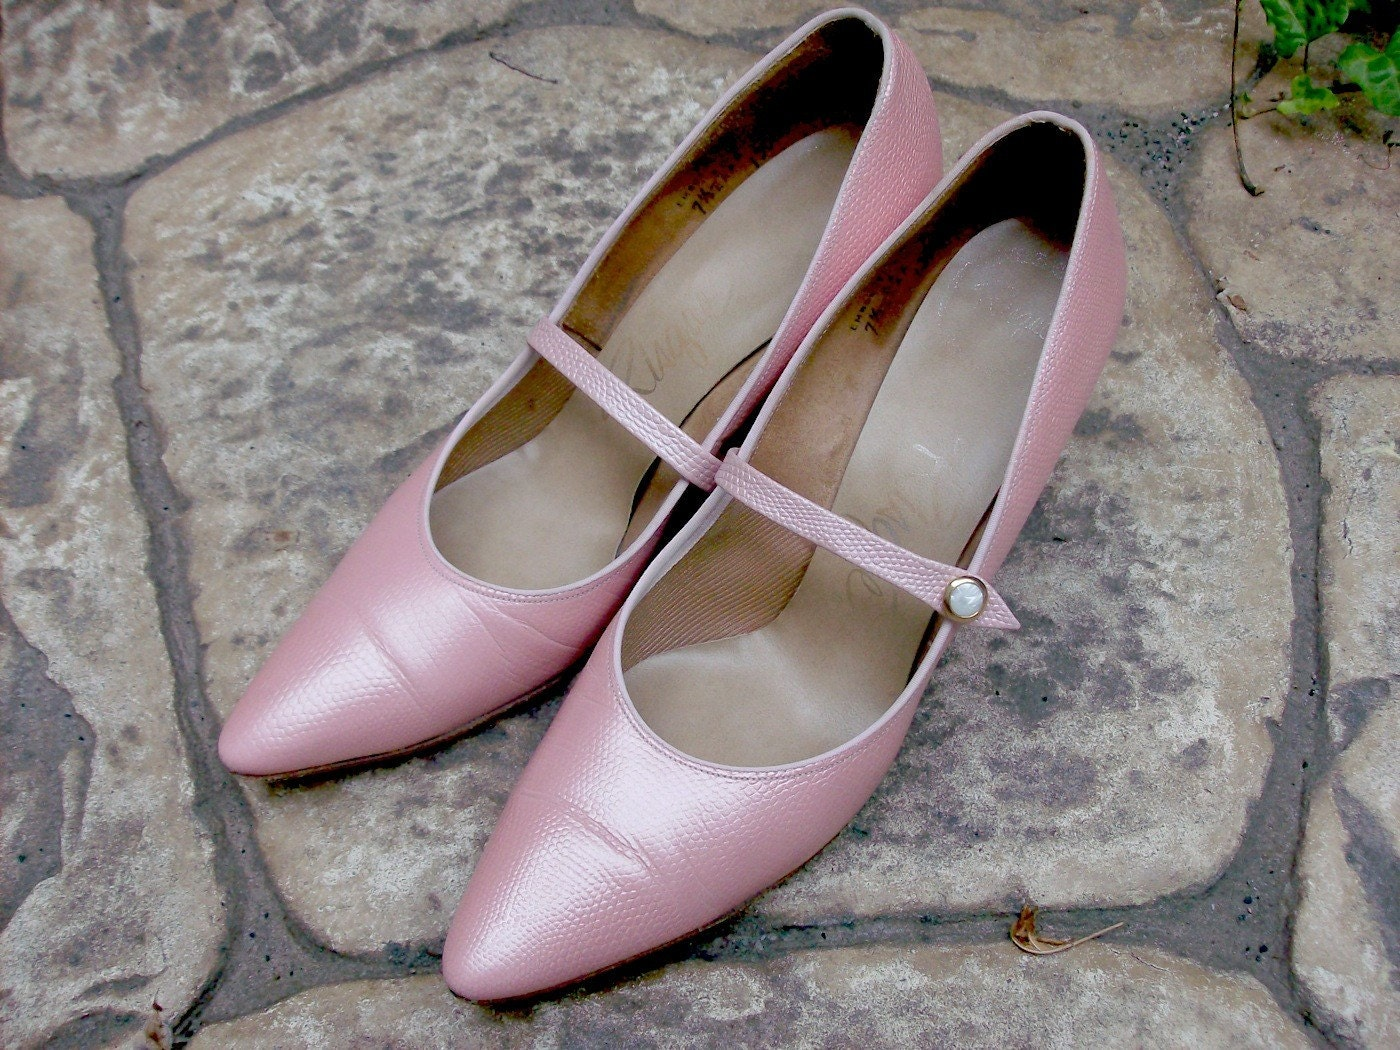 VINTAGE 50s 60s PINK PUMPS - PEARLIZED LIZARD EMBOSSED LEATHER HIGH HEELS - Size 6, 6 1/2, 6.5